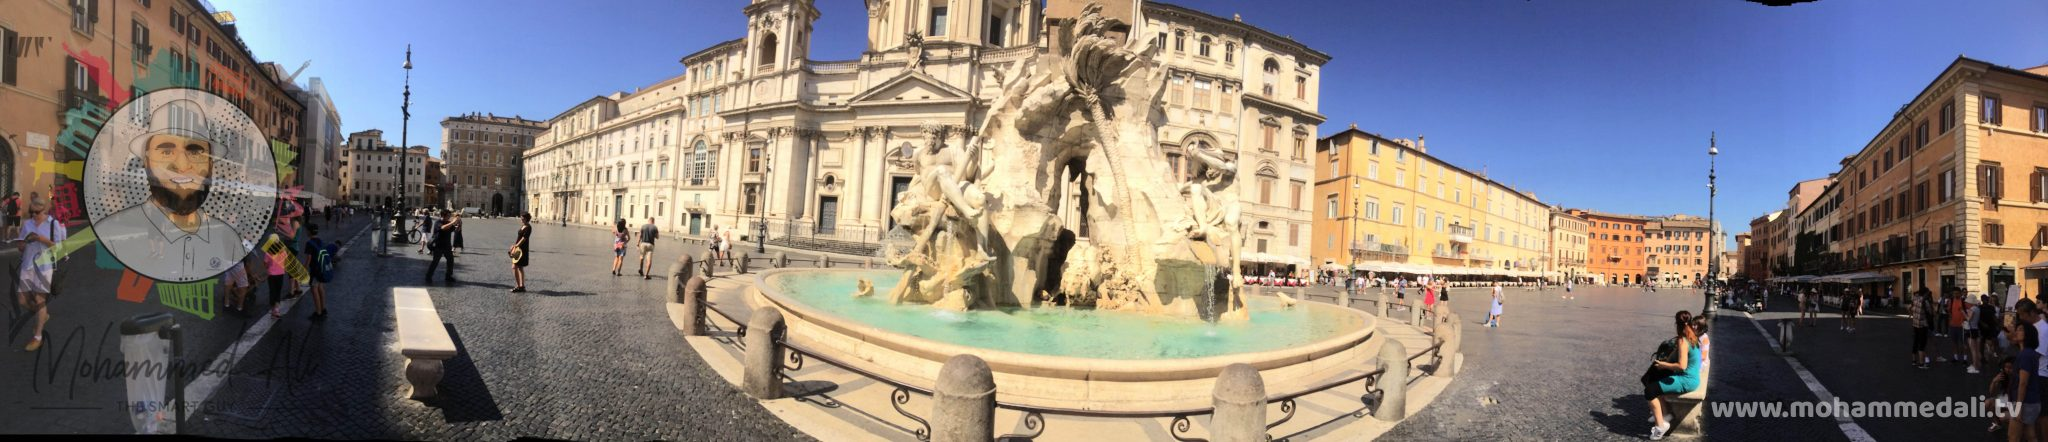 Panoramic view on the Fontana dei Quattro Fiumi of Piazza Navona